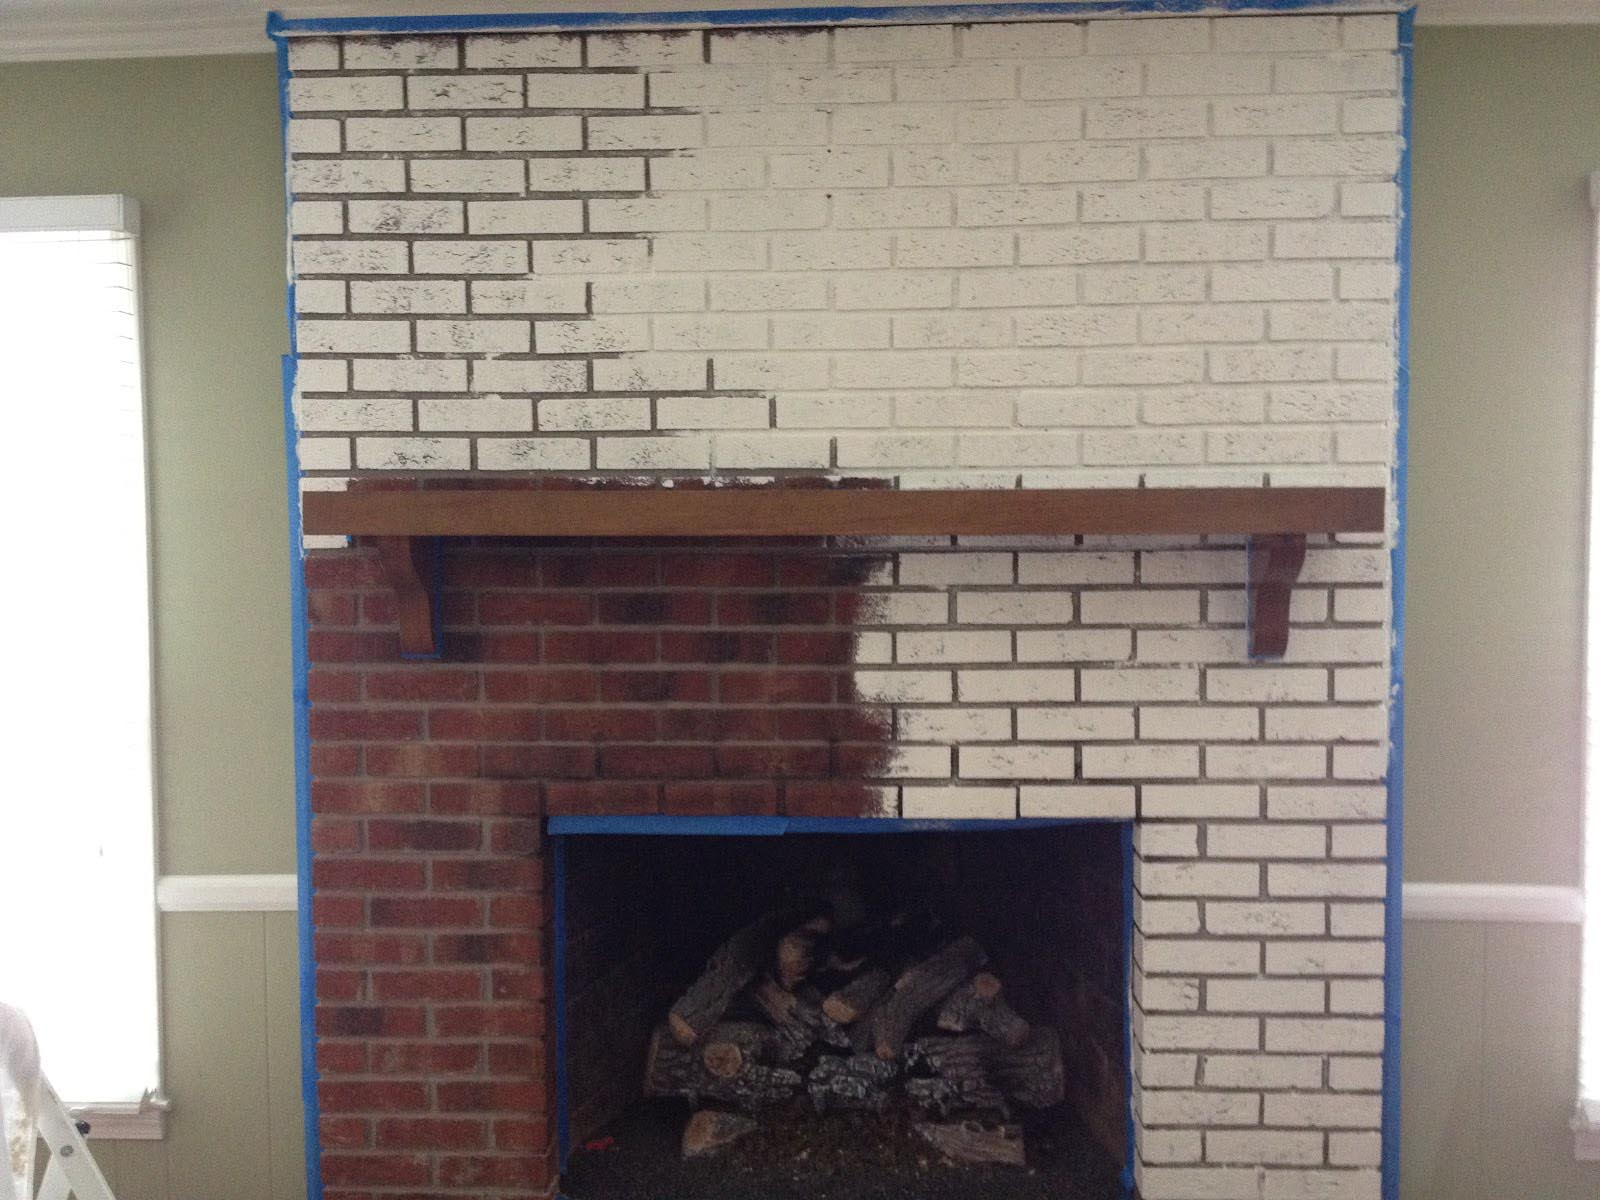 How To Clean Inside Fireplace Brick nuyelofitcom Home Design